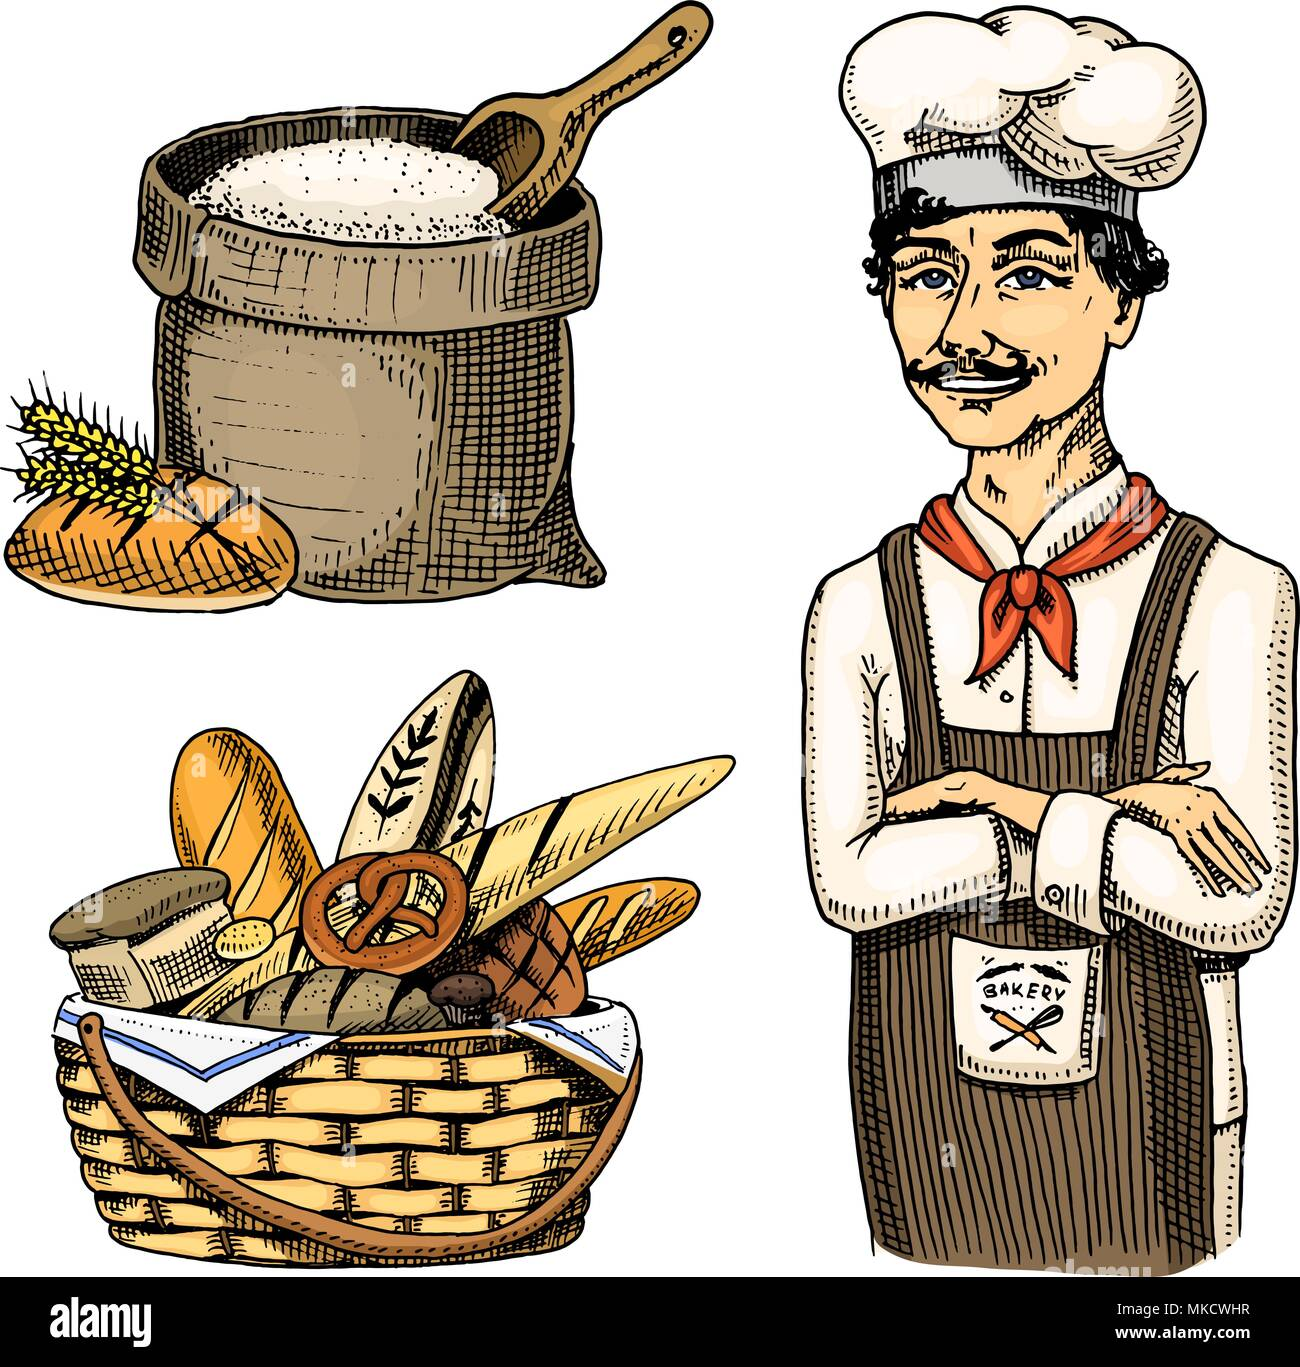 Baker Pastry Chef Cartoon Character Stock Photos Amp Baker